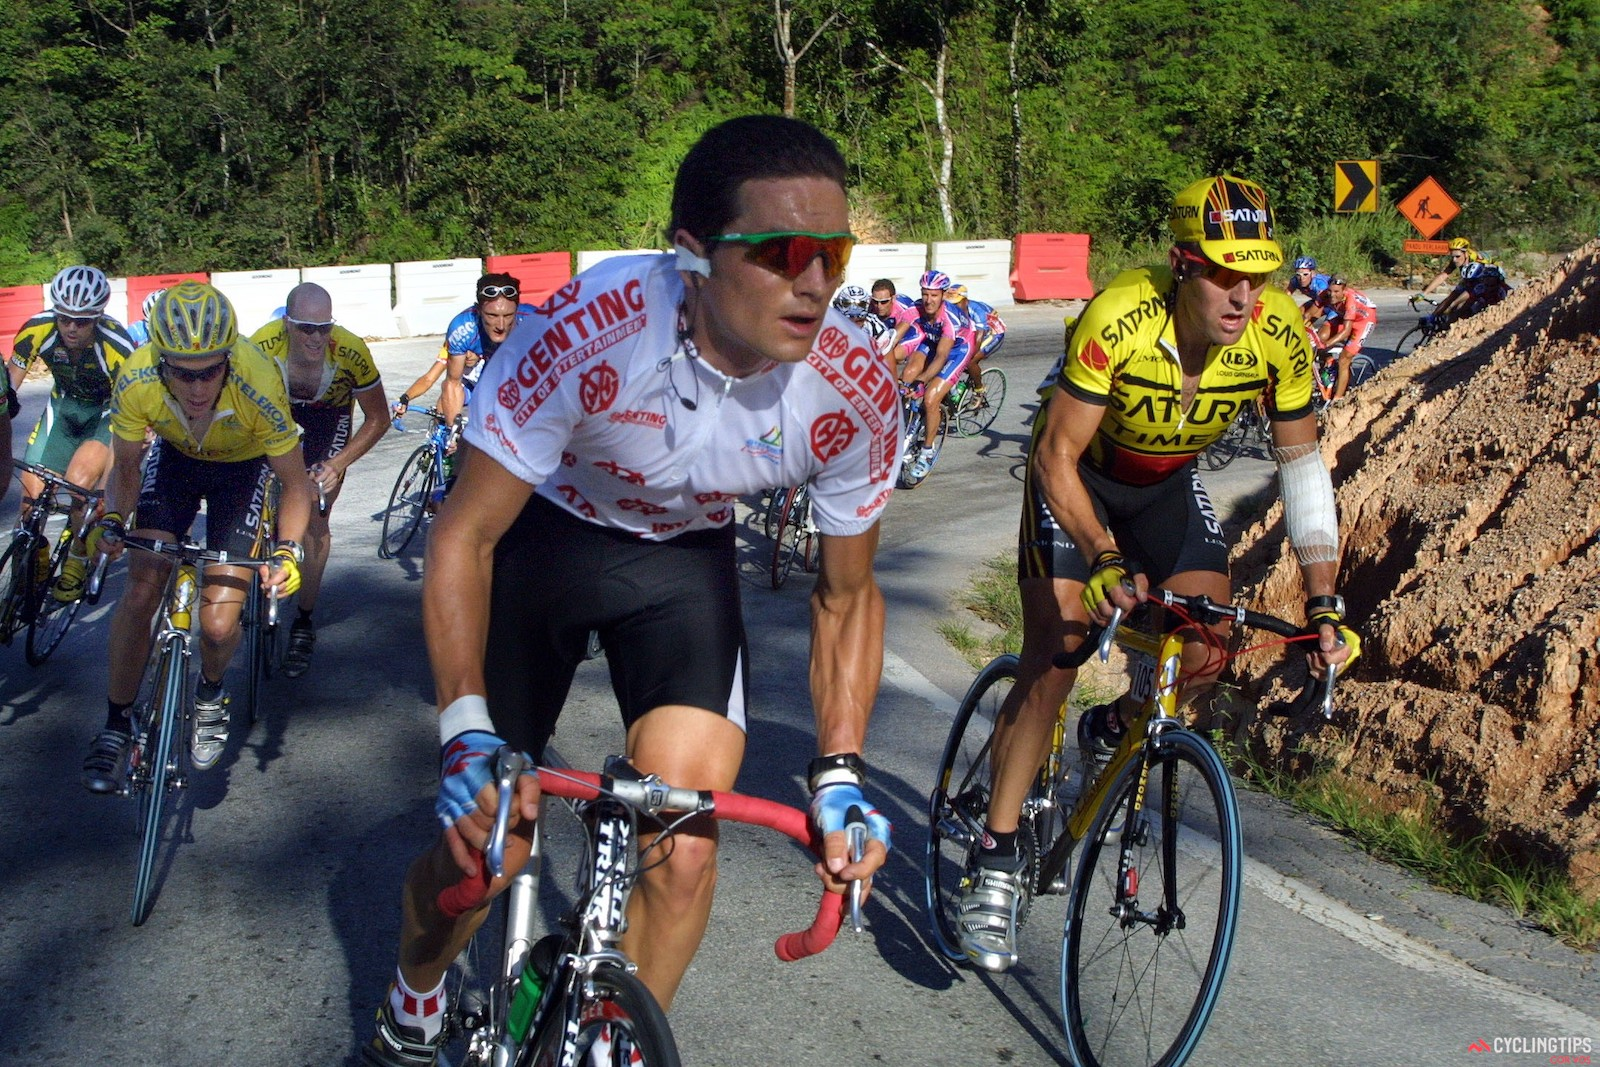 Roland Green (center) leads Saturn teammates Tom Danielson, Chris Horner, and Nathan O'Neill on Stage 8 of the 2003 Tour de Langkawi. Photo: Marketa Eng/Cor Vos